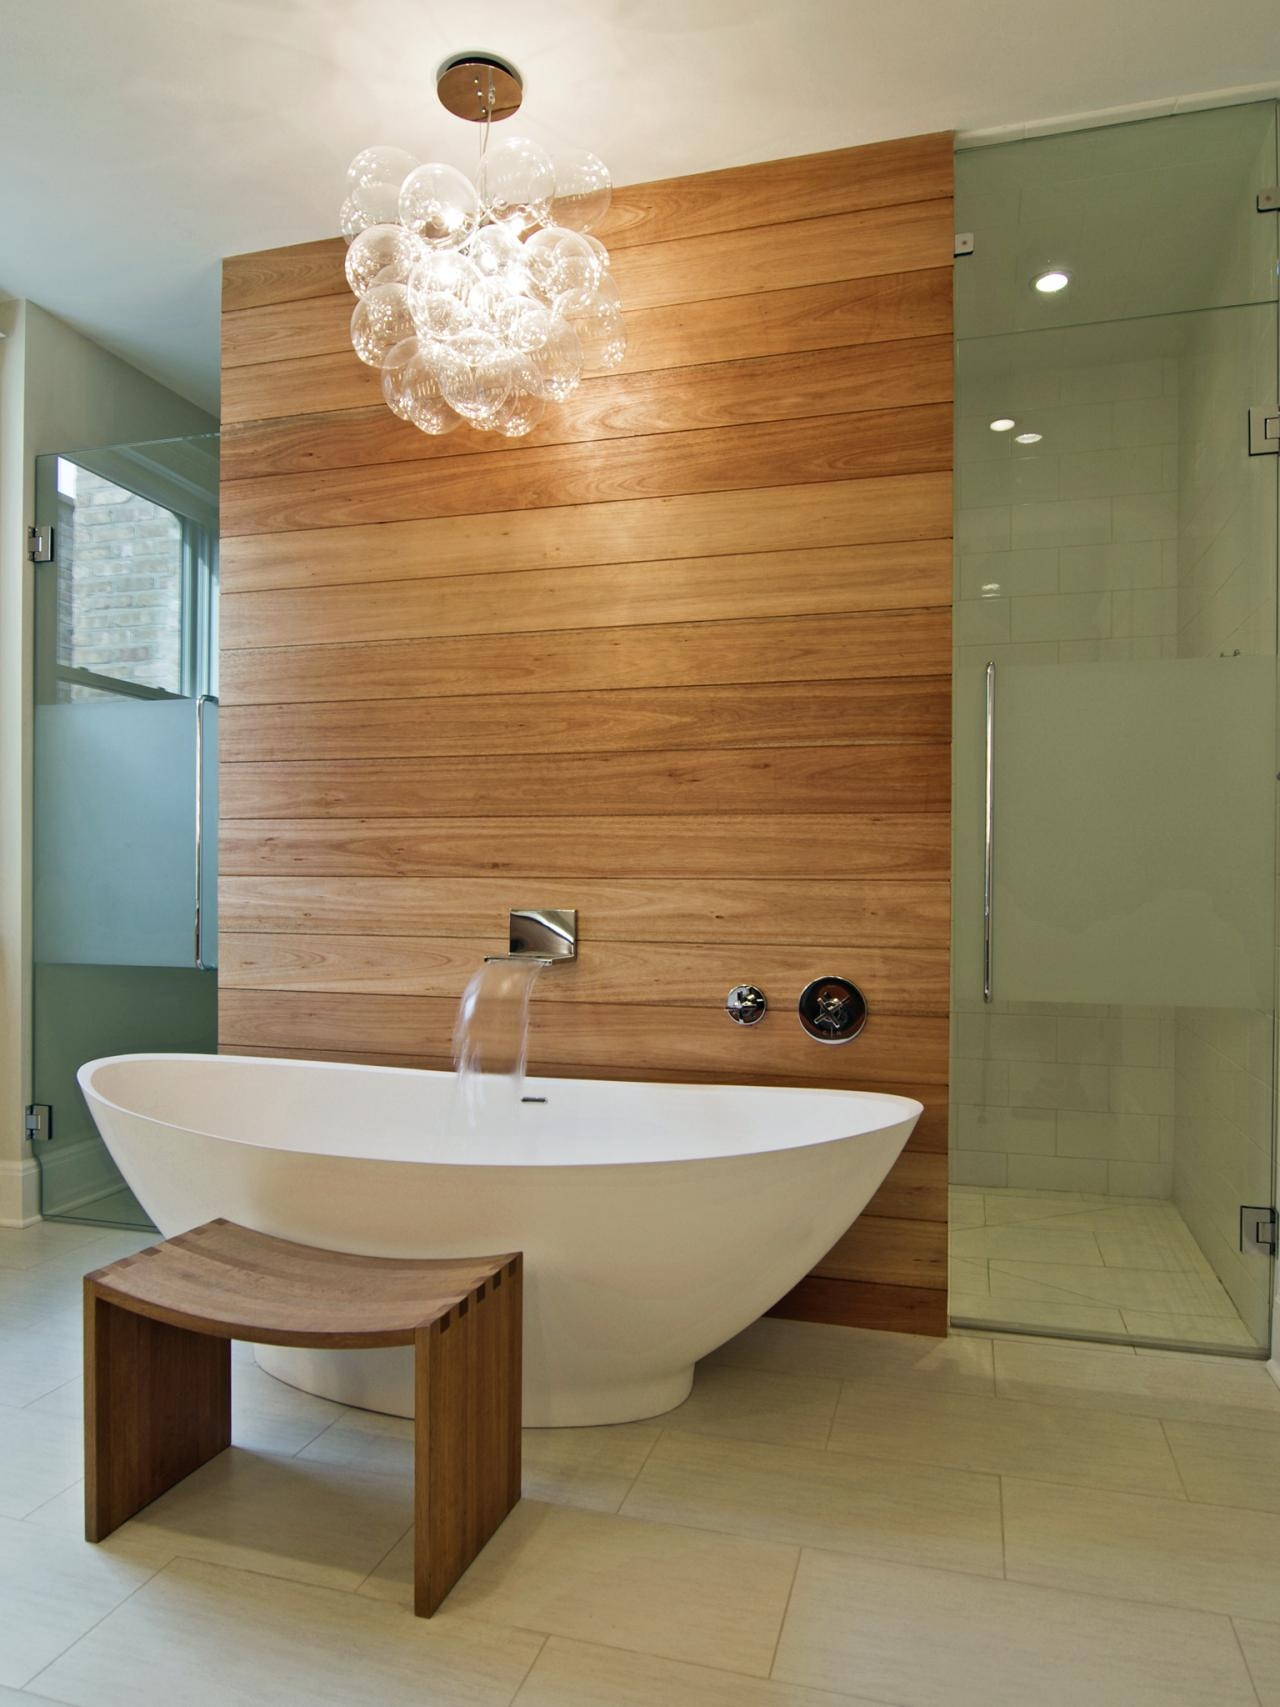 Bathrooms Modern Bathroom With Oval Modern Bathtub And Wooden Within Modern Bathroom Chandeliers (View 4 of 15)